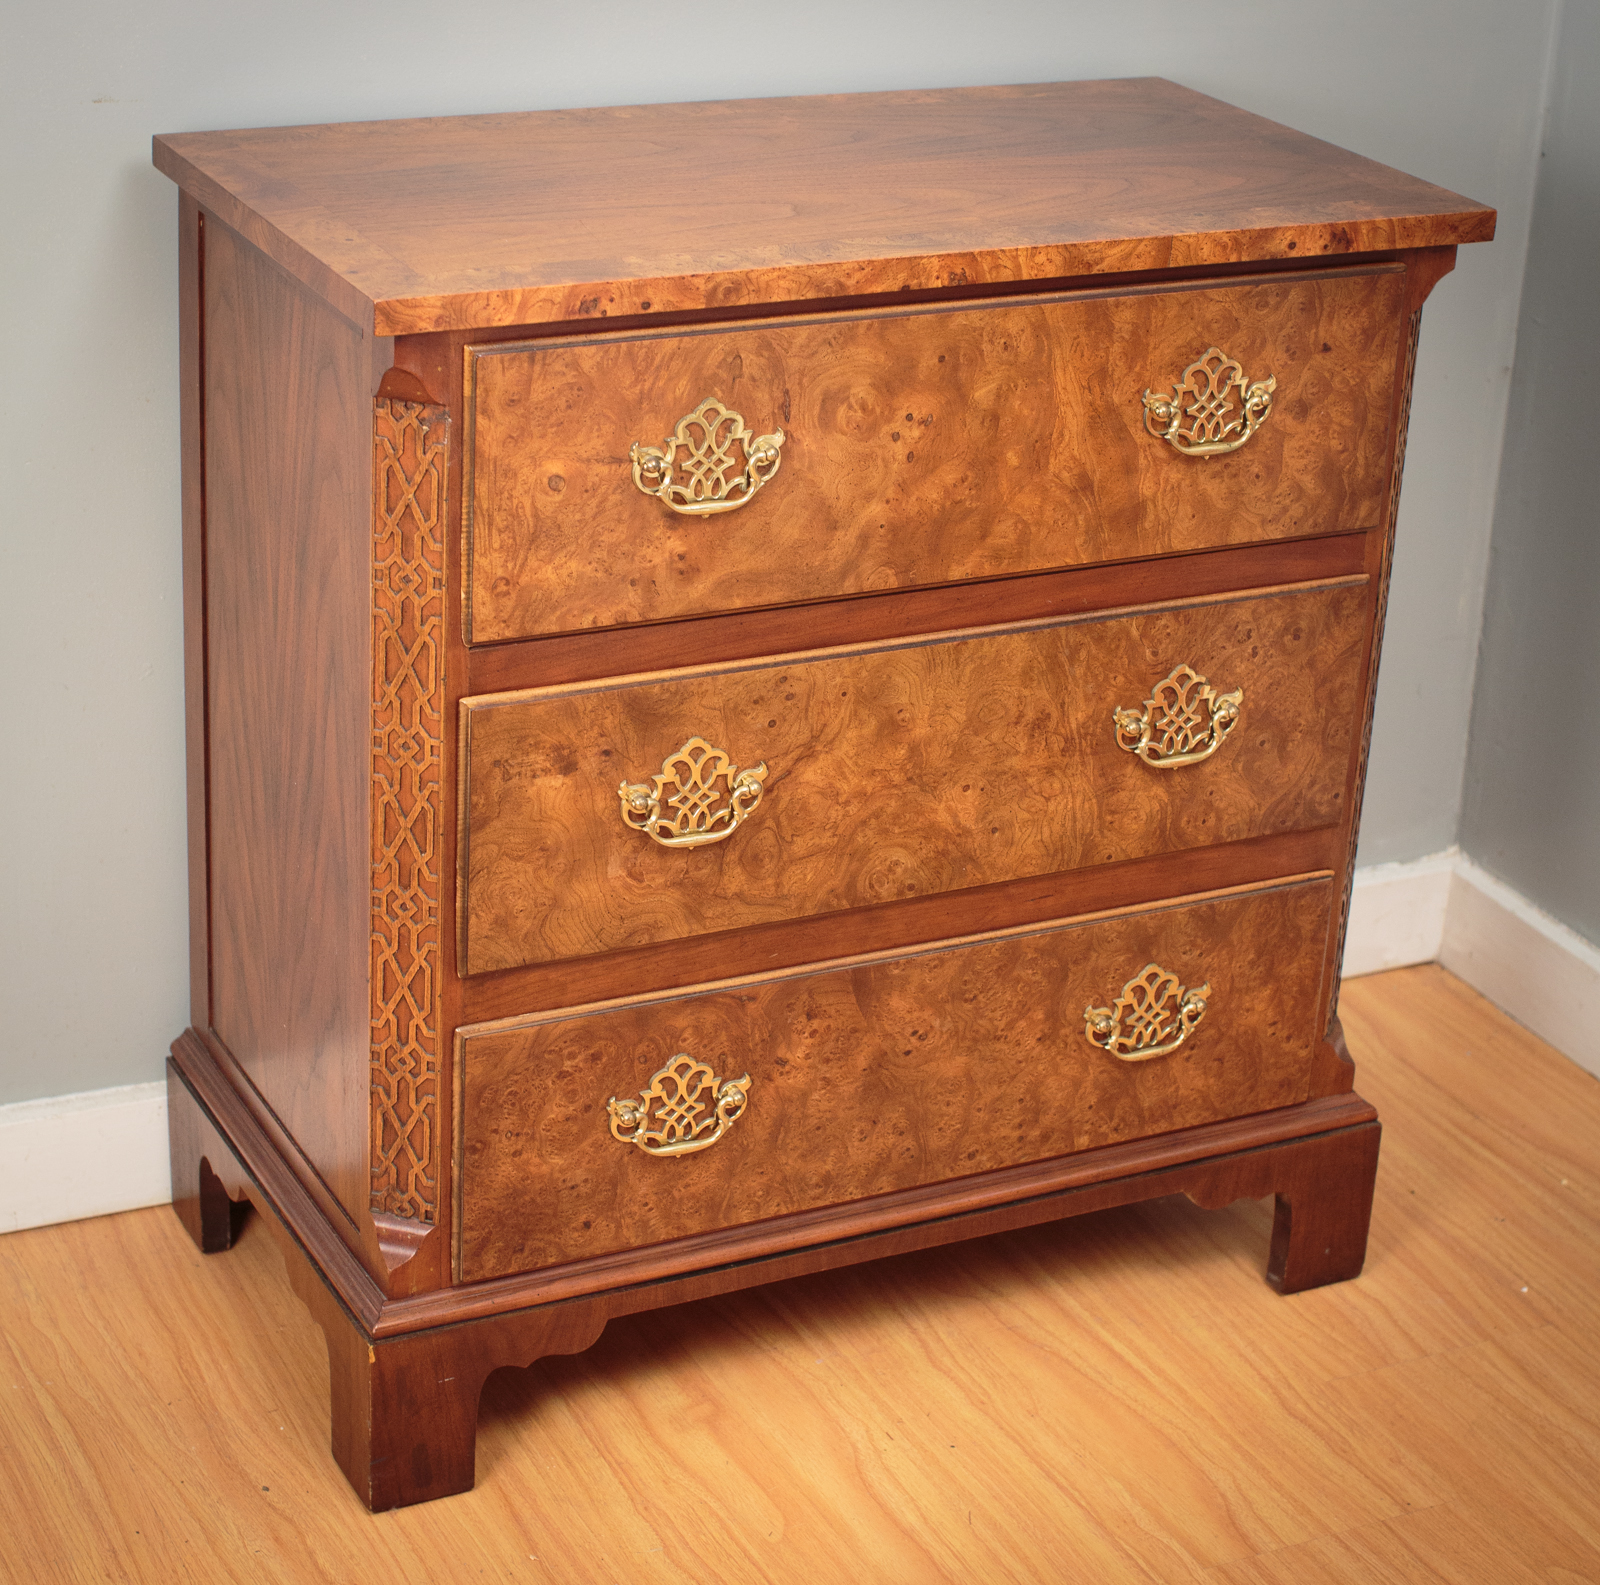 Antique Furniture Appraisal: Chippendale Style Chest Of Drawers By Baker Furniture